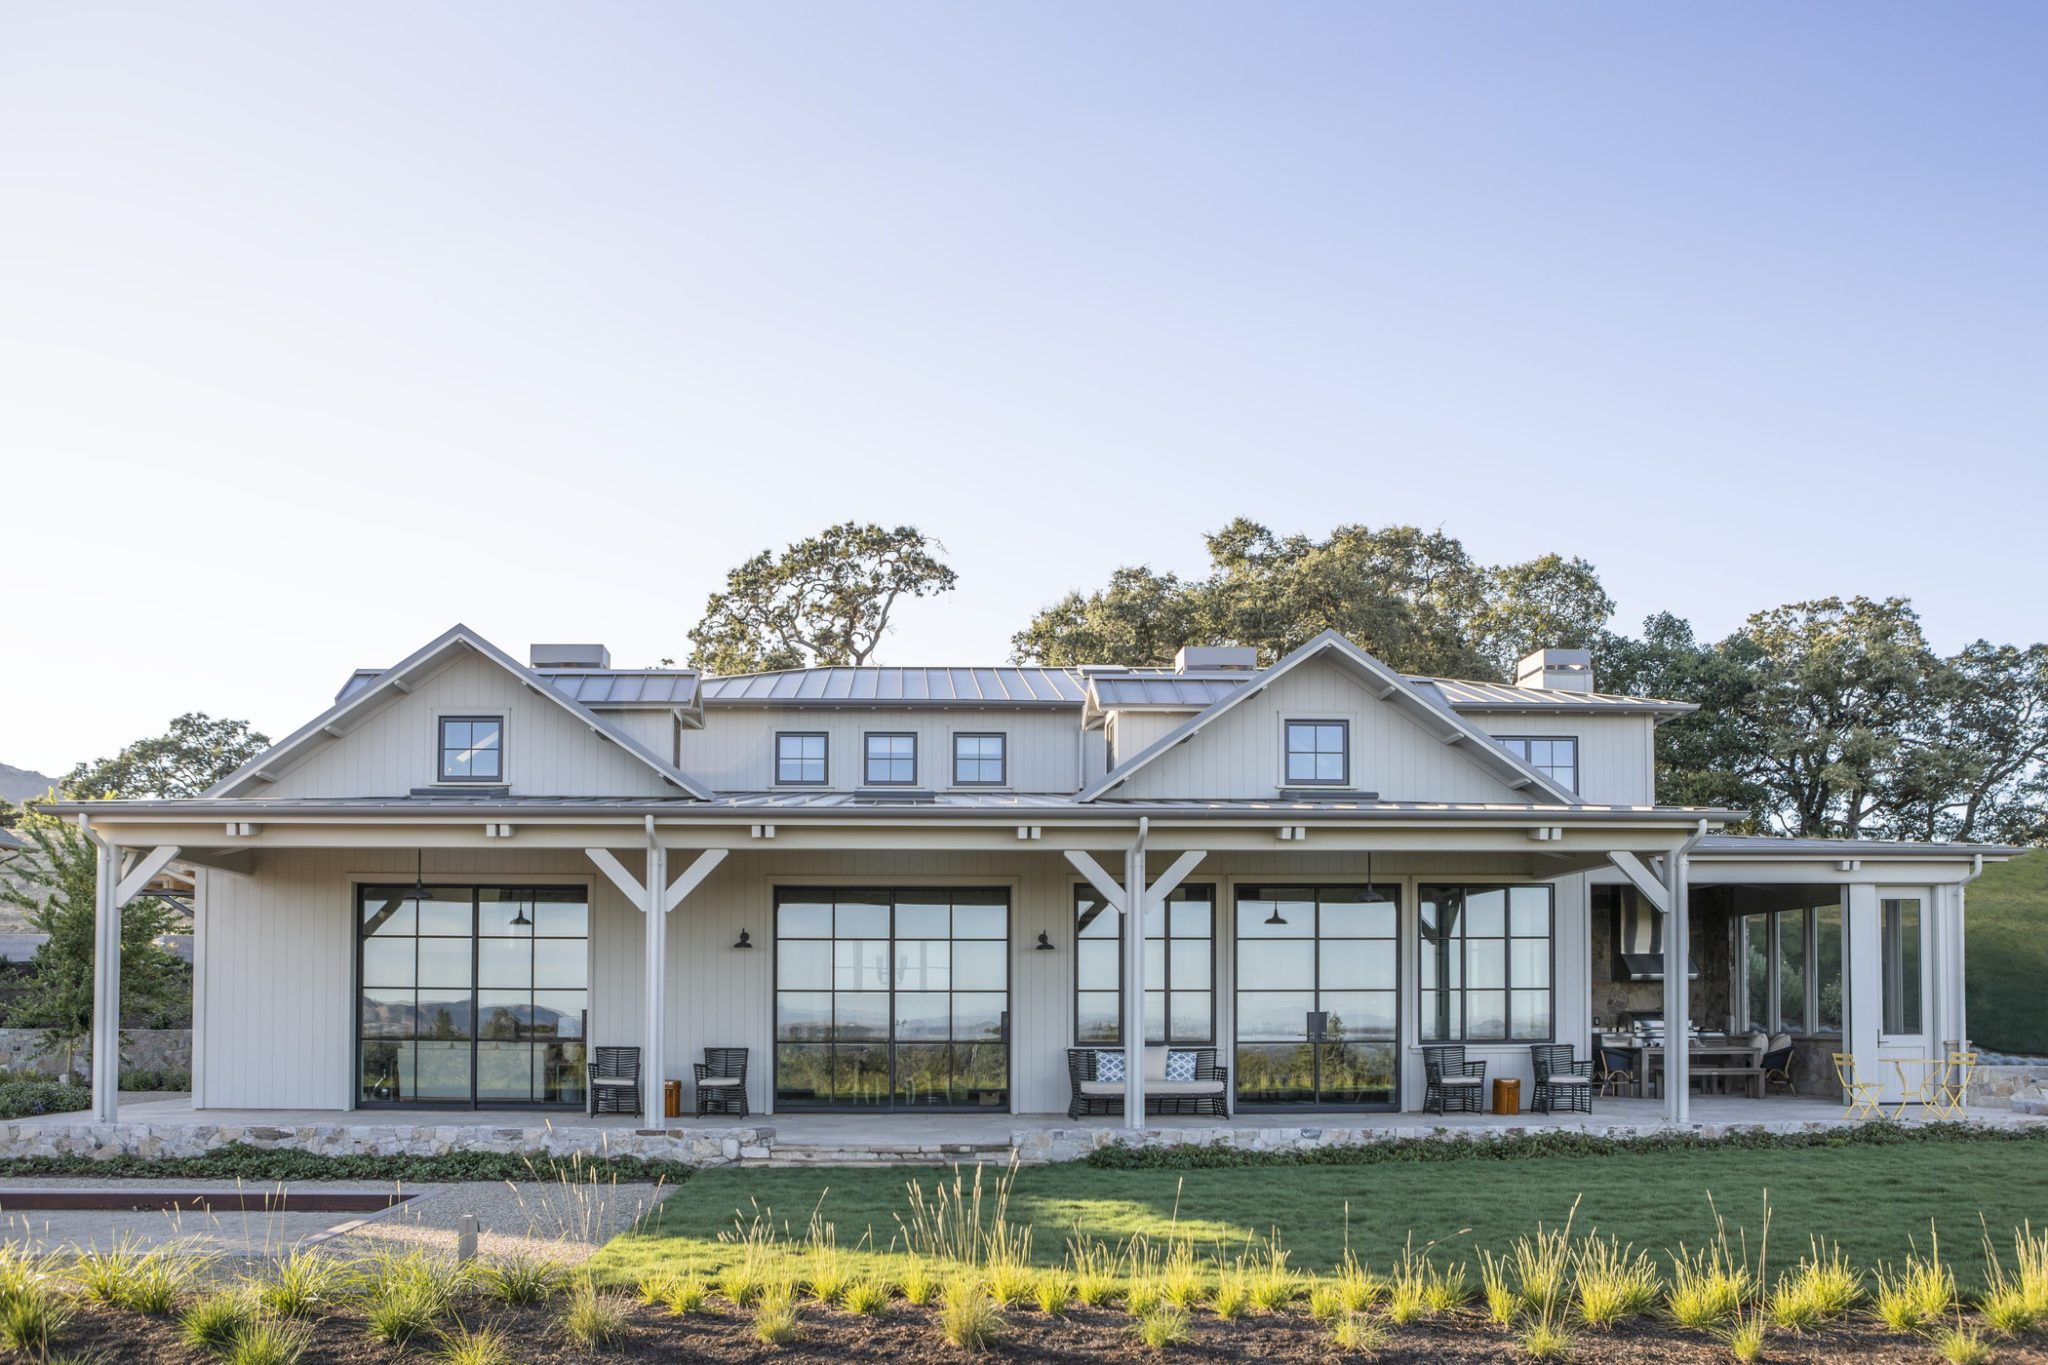 Although the clients and architects wanted wooden materials that would match the country aesthetic of the property, they opted for painted cement board from Boral that would resemble wood sidingand protect against wildfires. Nickel-gap detailing helps the siding to stand out, and the shadowed spaces between the boards run parallel to the tall, gridded glass doors, which offer an unconventional, contemporary take on traditional farmhouse styles. At the base of the home and surrounding buildings, full-dimension stone was used to integrate the exterior with the retaining walls.